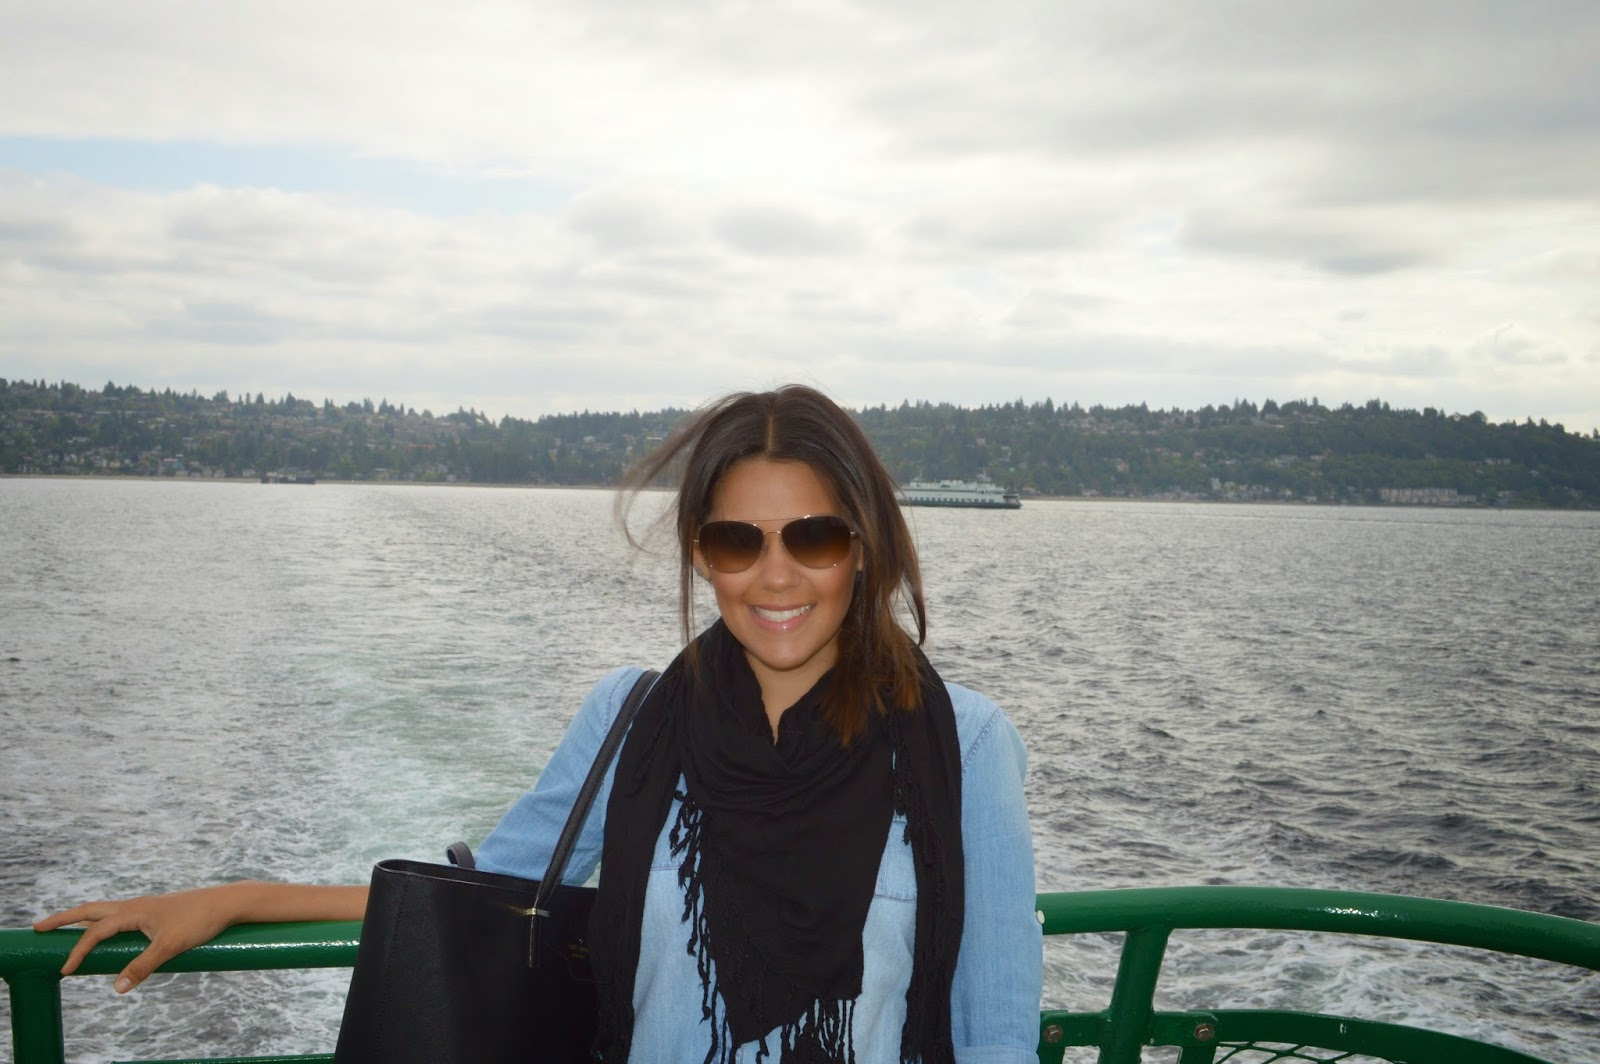 Marifer at the ferry from Seattle to Vashon island